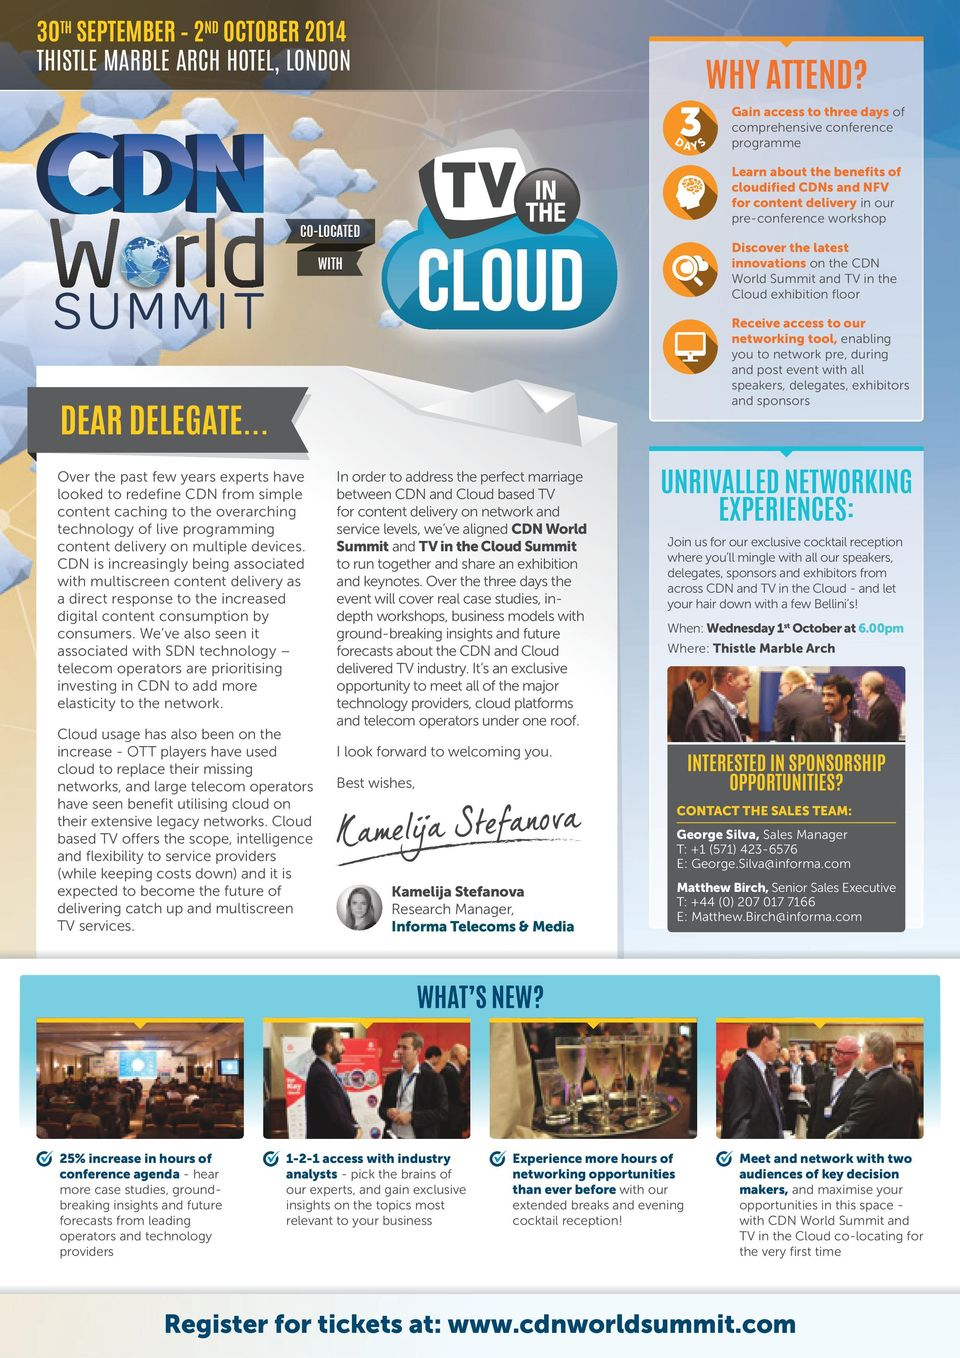 on the CDN World Summit and TV in the Cloud exhibition floor eceive access to our networking tool, enabling you to network pre, during and post event with all speakers, delegates, exhibitors and